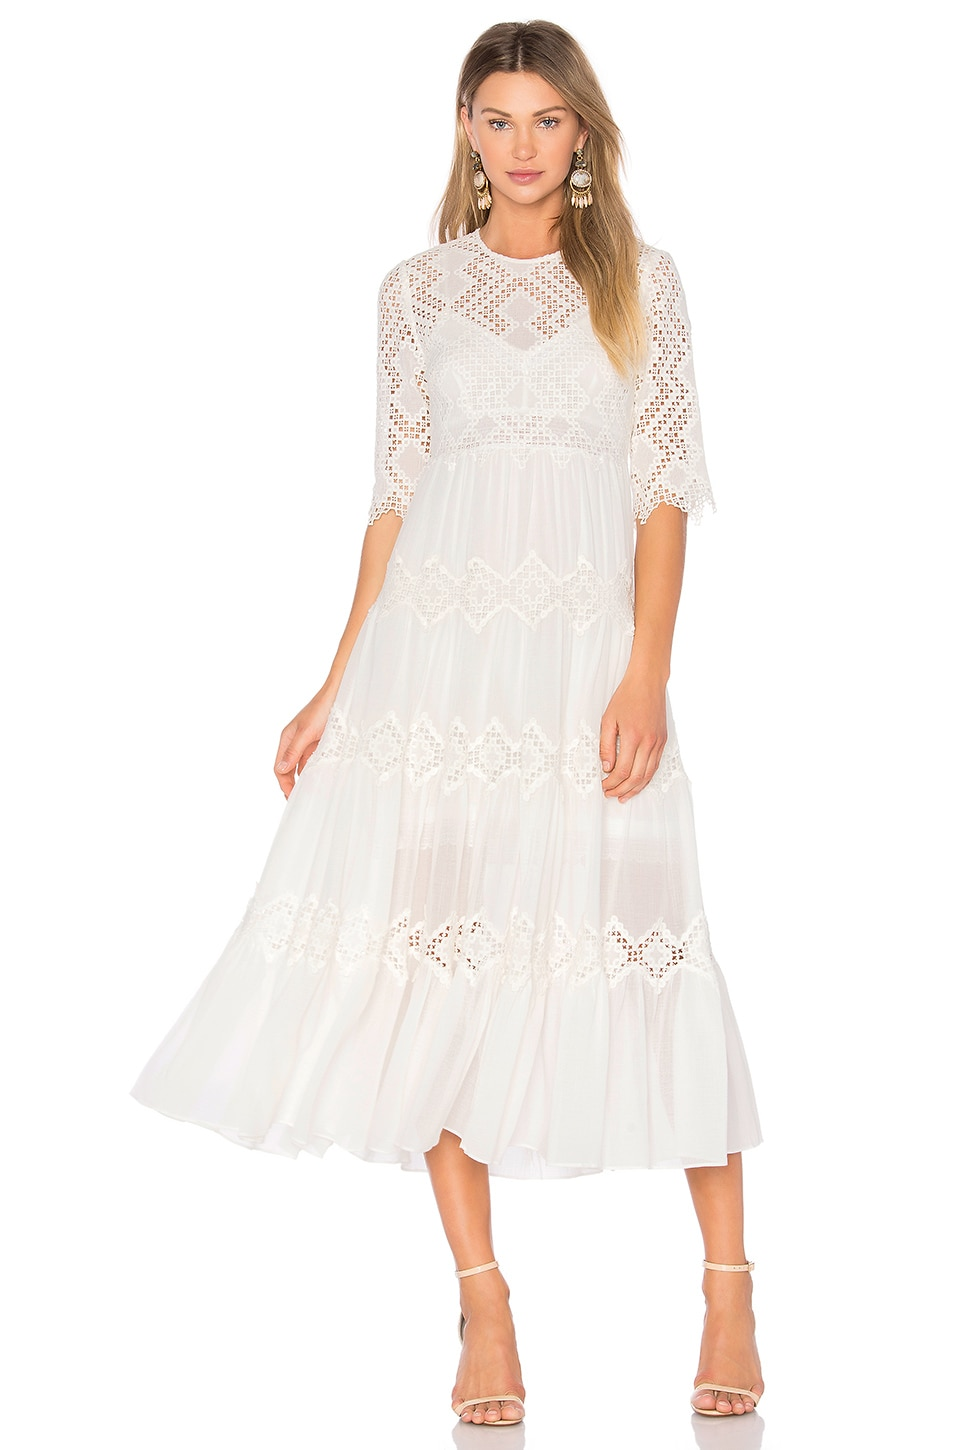 Oleander Diamond Lace Tier Dress by Zimmermann